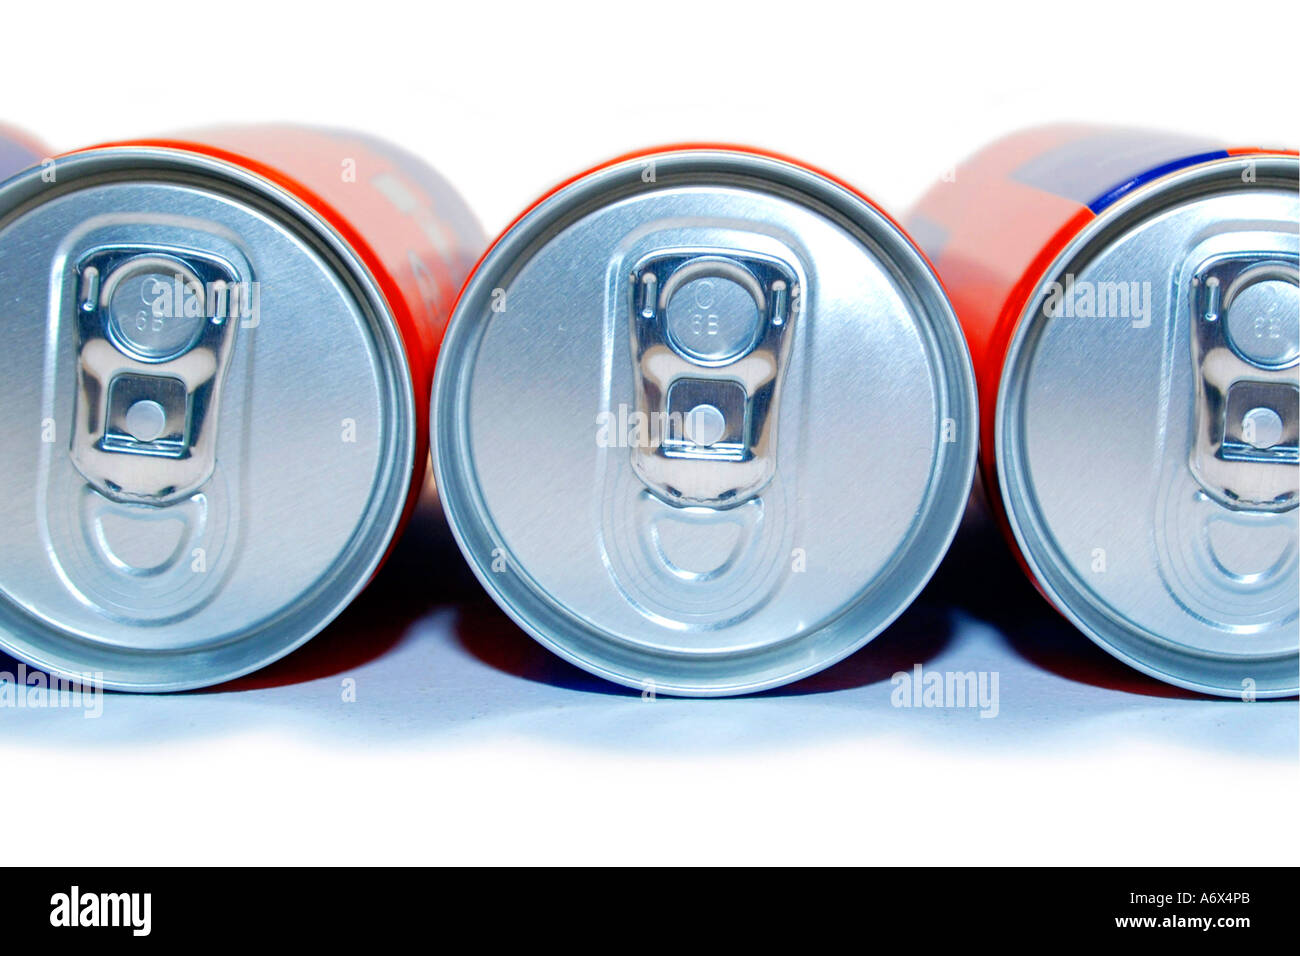 A group of Aluminum Cans and their pull tabs. - Stock Image